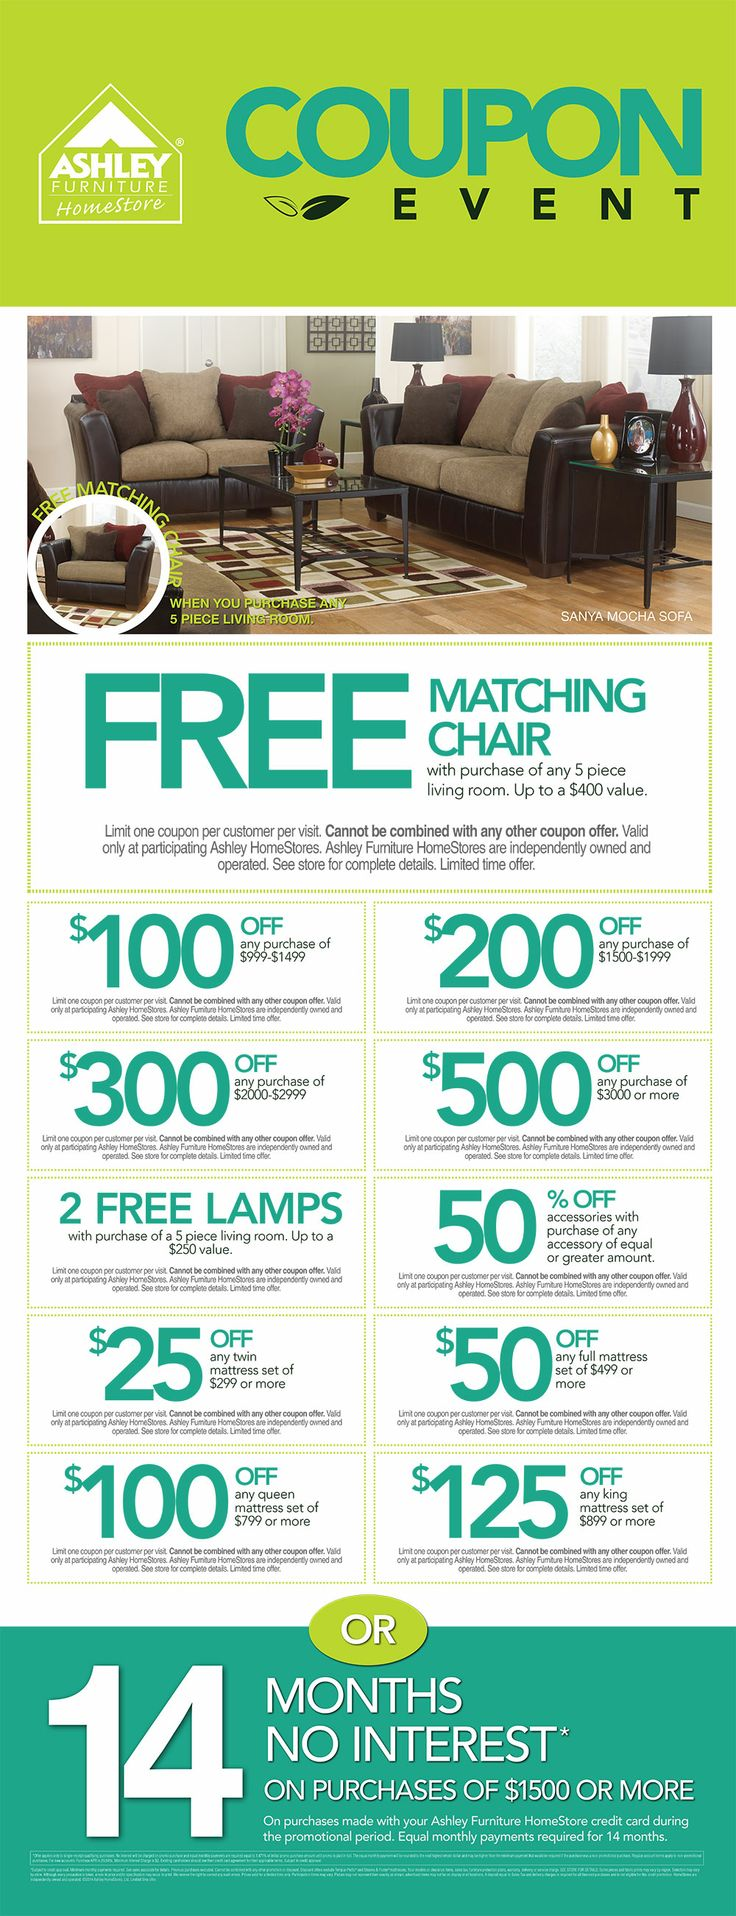 The Summer Savings Coupon Event At Ashley Furniture In Richland Wa Going On June 10th 2014